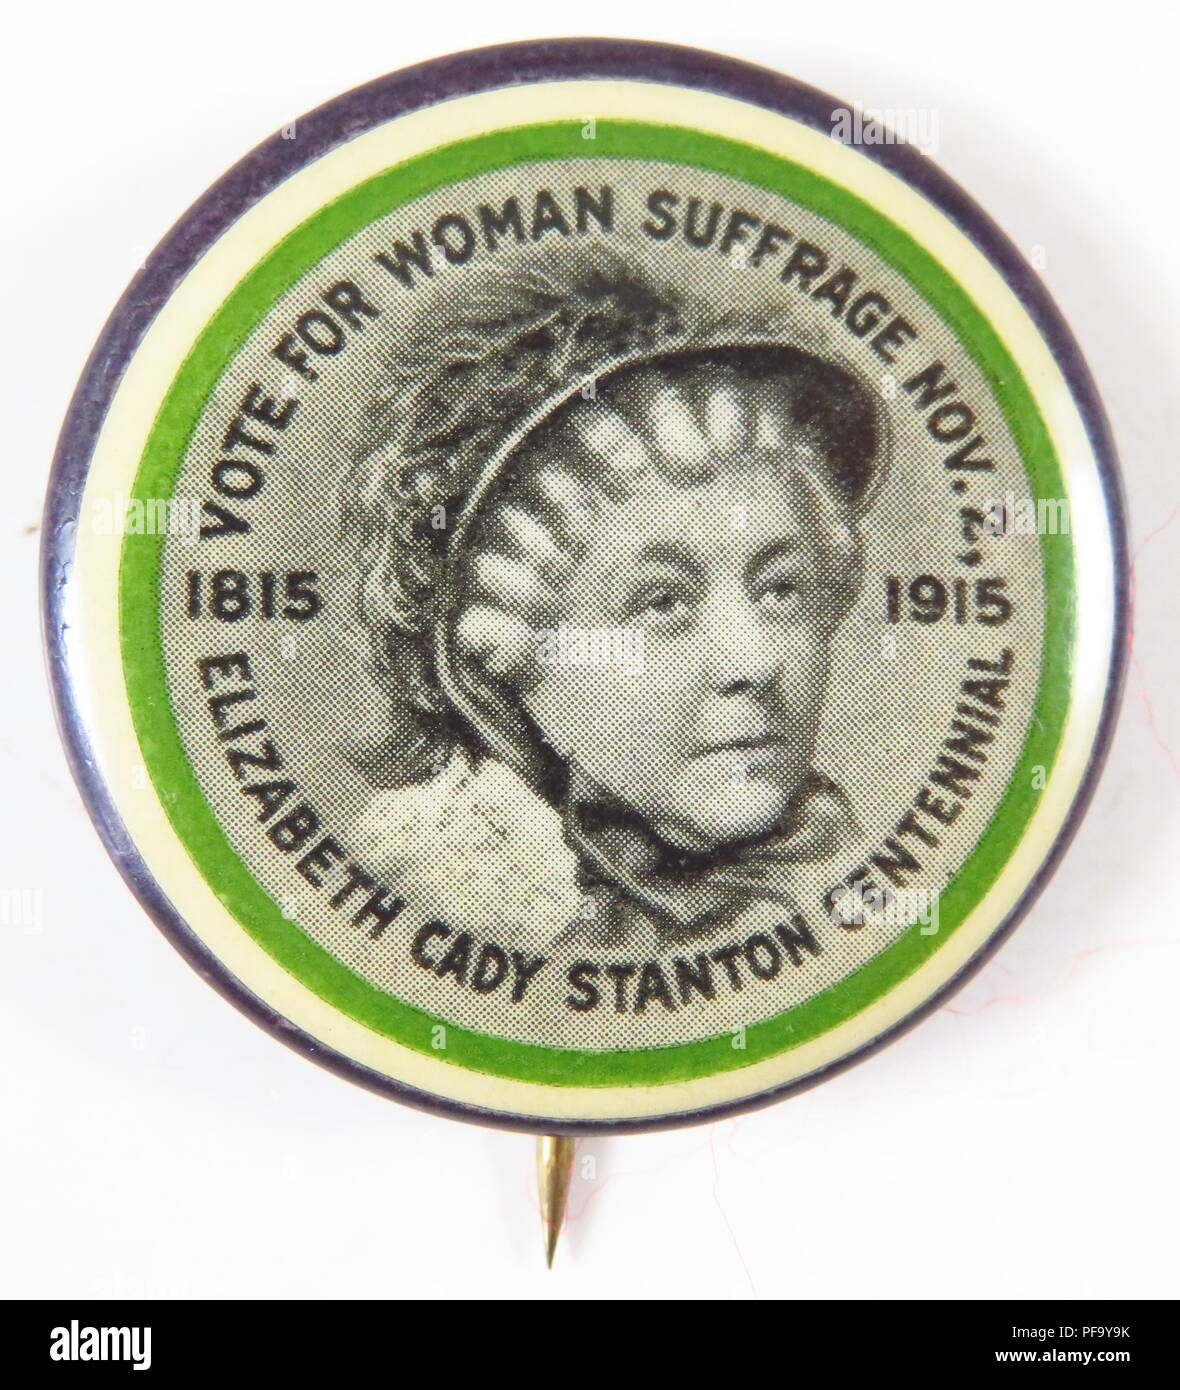 Purple, green and white, suffrage pin with an image of Elizabeth Cady Stanton at the center, ringed by the words 'Votes for Woman Suffrage Nov 2, Elizabeth Cady Stanton Centennial, ' and the dates '1815' and '1915' to commemorate the hundred anniversary of Stanton's birth and the imminent New York Suffrage referendum by the Women's Political Union founded by her daughter Harriot Stanton Branch, issued by the Connecticut Woman Suffrage Association (CWSA) for the American market, 1915. () - Stock Image